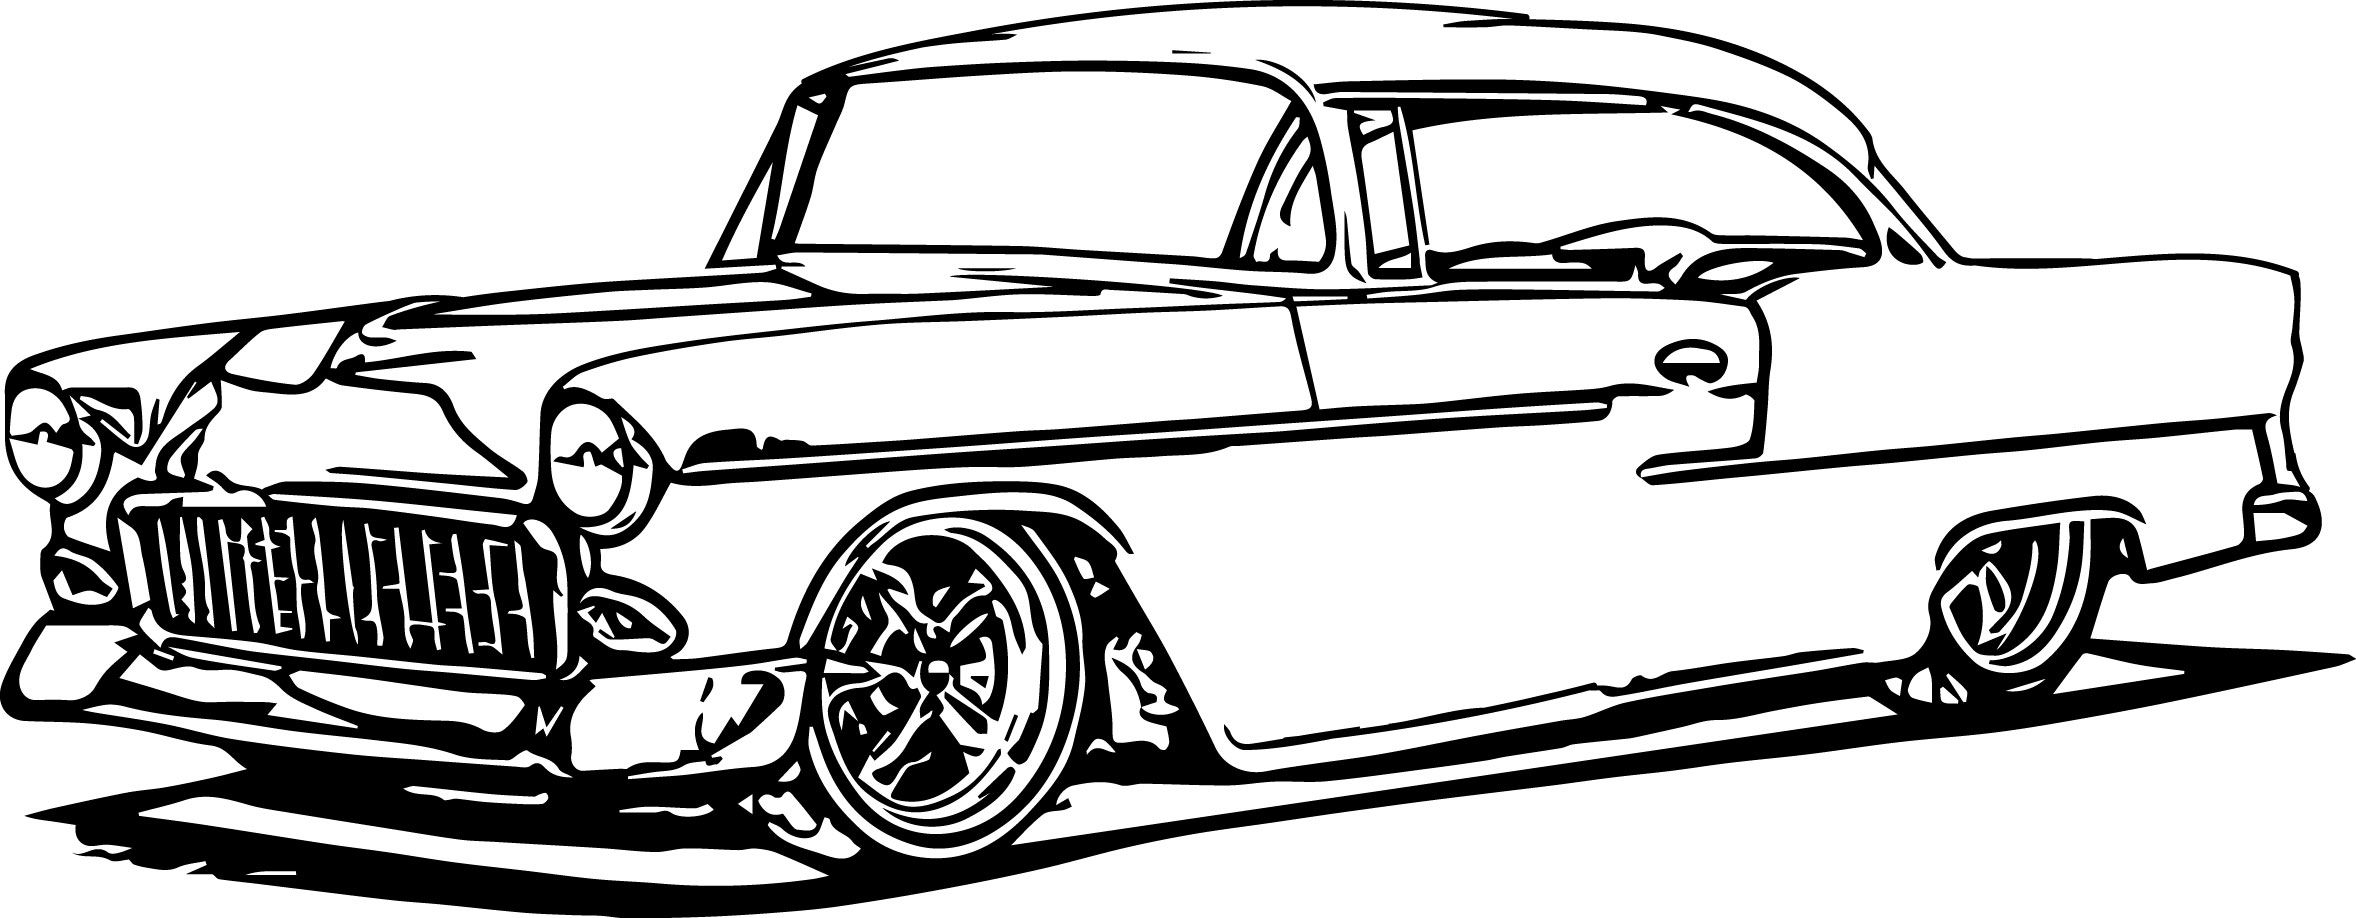 Antique Car Coloring Pages Free Online Printable Sheets For Kids Get The Latest Images Favorite